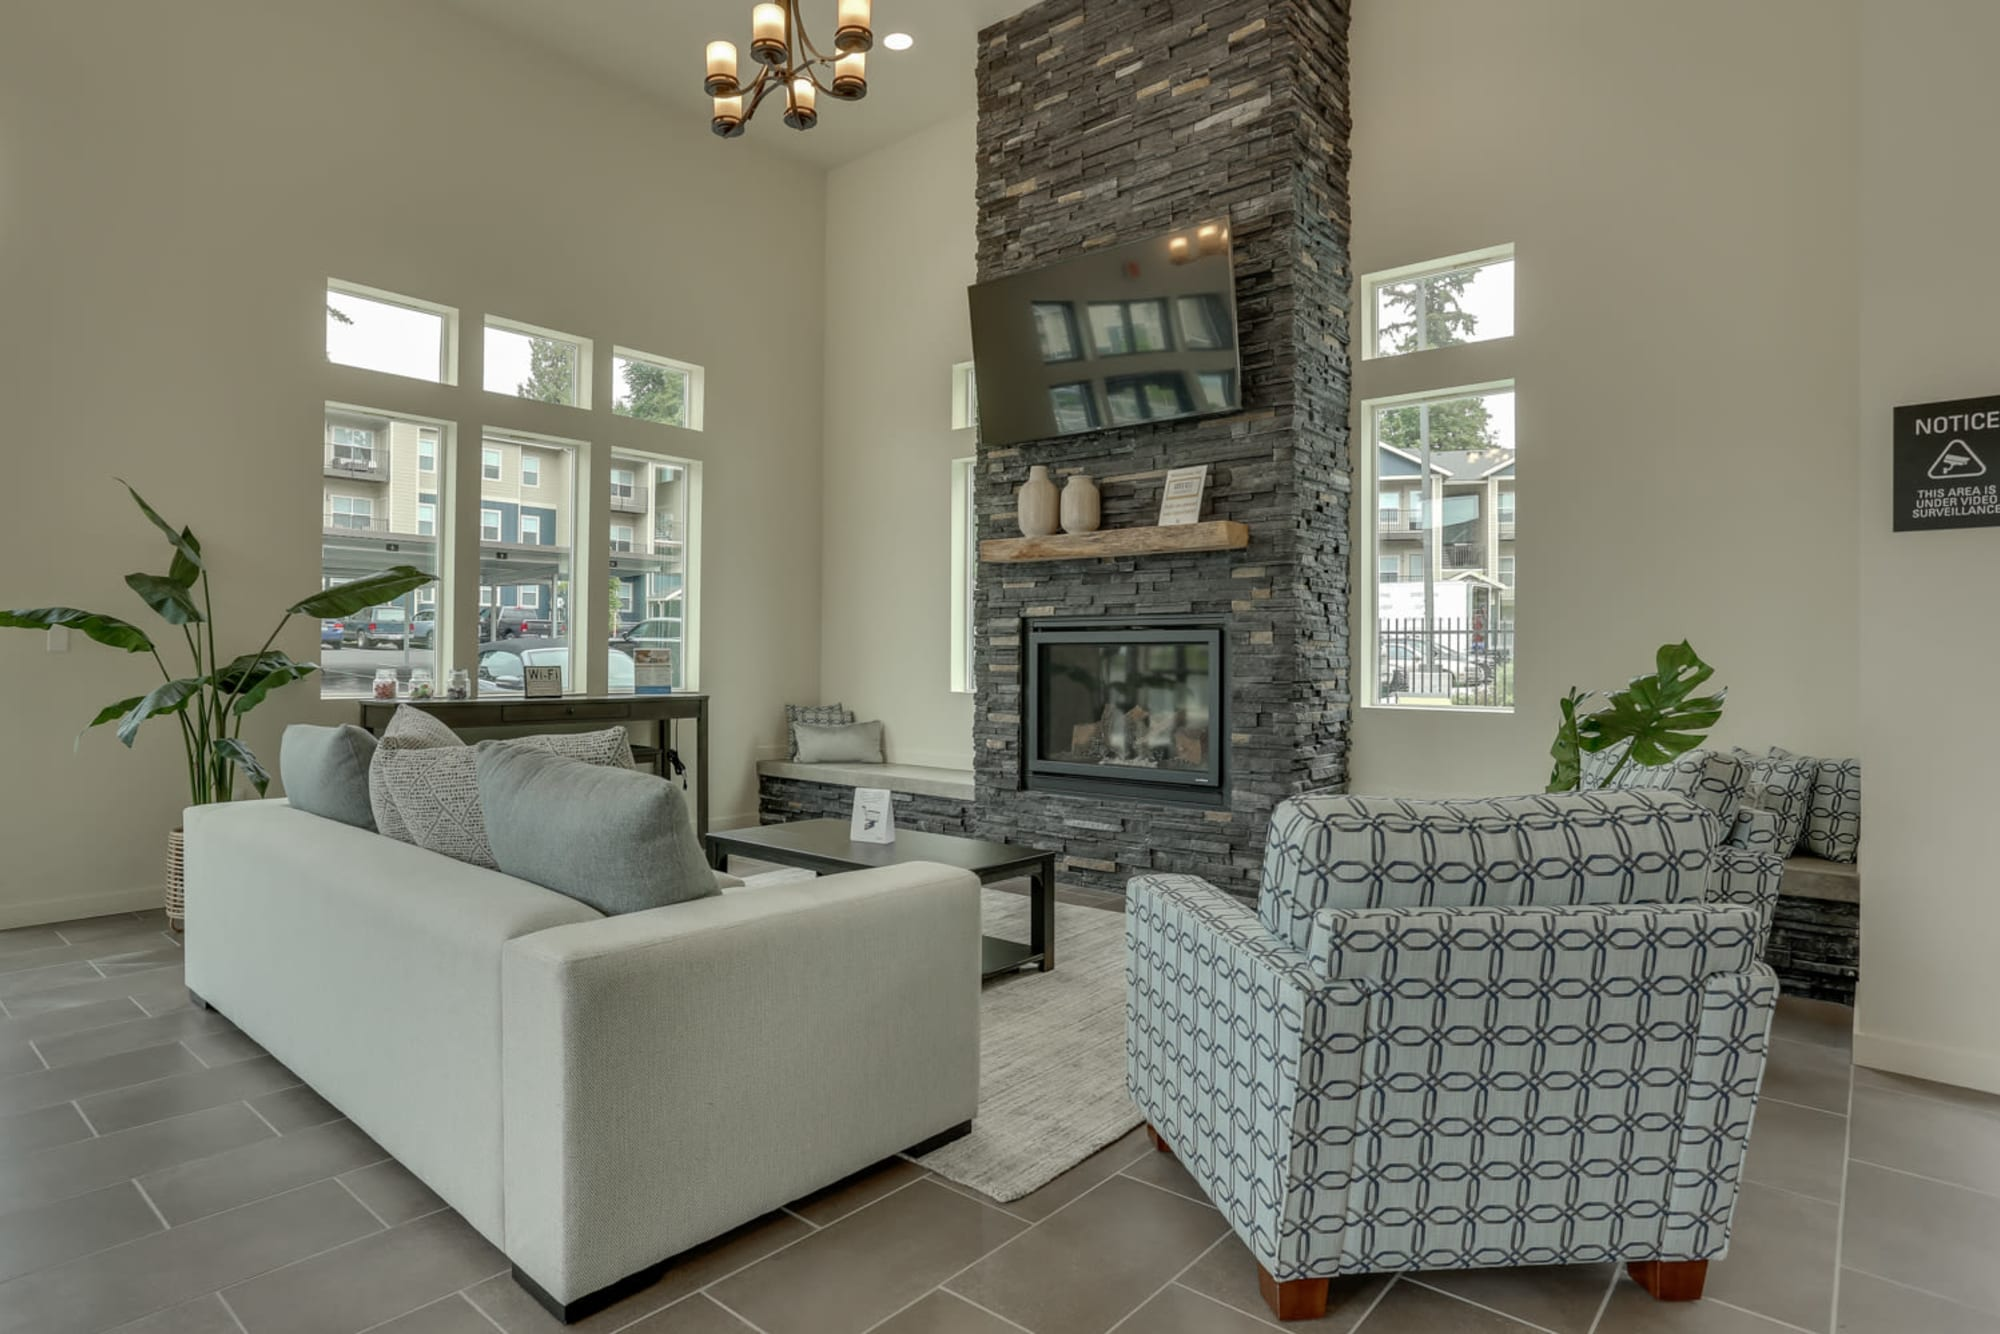 The community lounge at Haven Hills in Vancouver, Washington